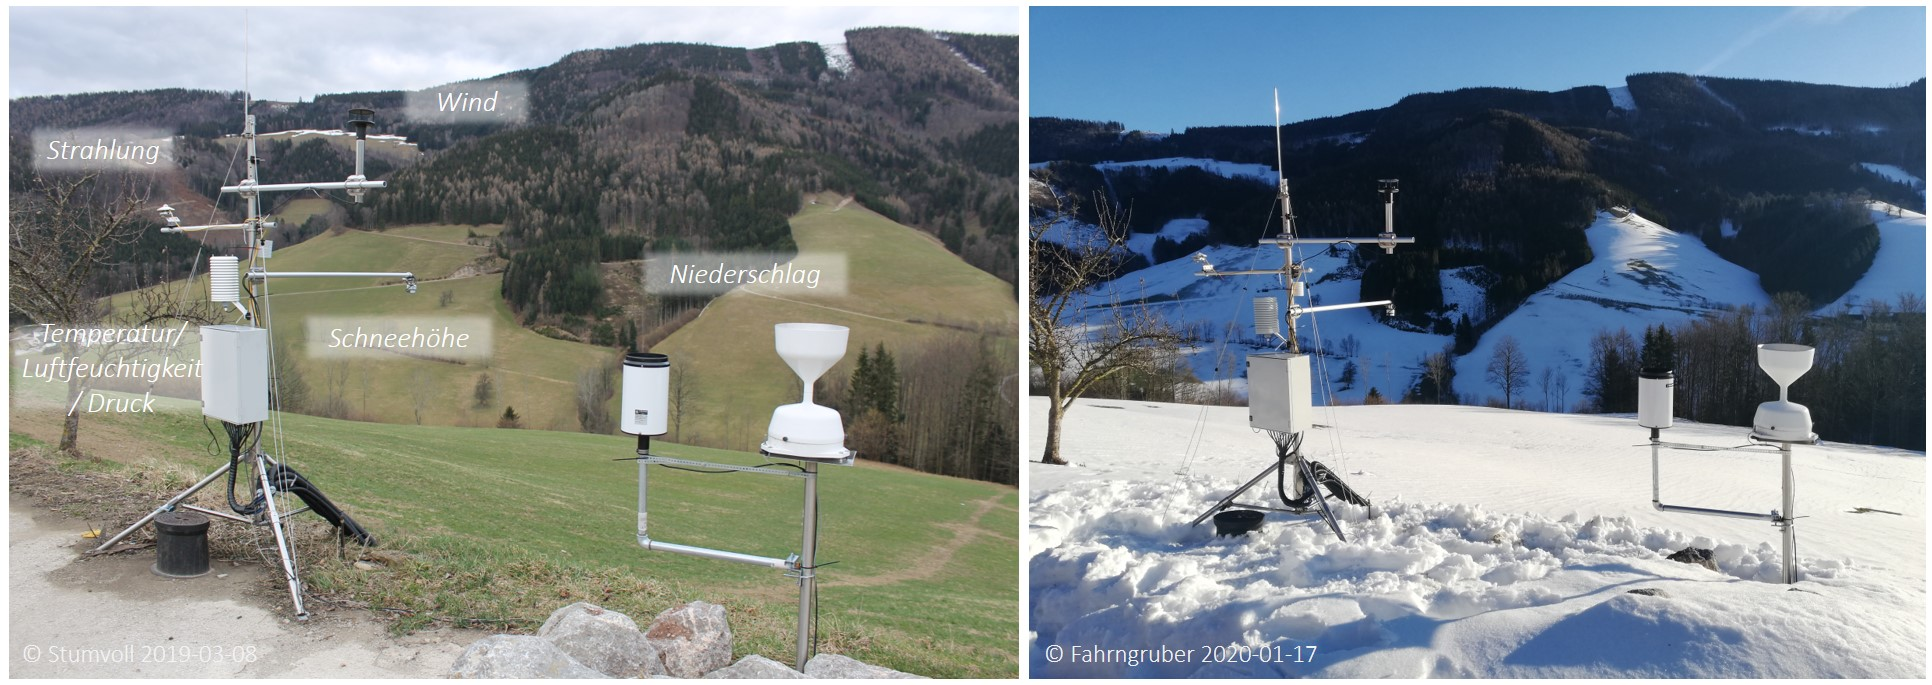 Stumvoll 2020 MeteoStation HfM Sommer Winter